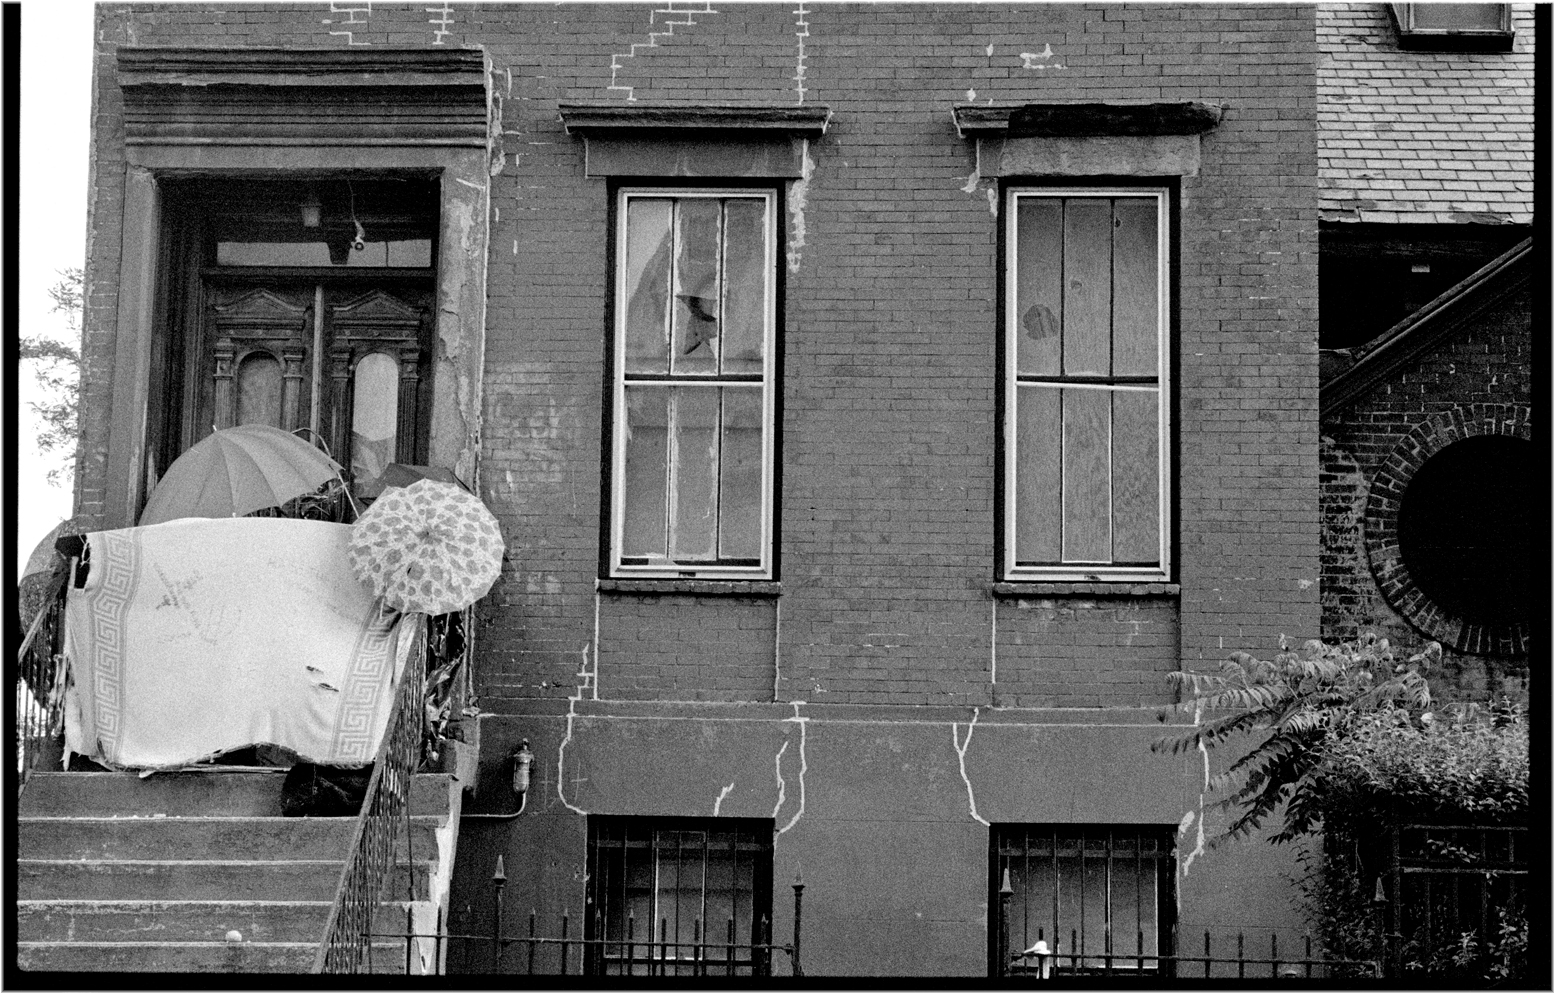 Abandonedbrownstone Umbrellas Harlem 1989 Copy Black And